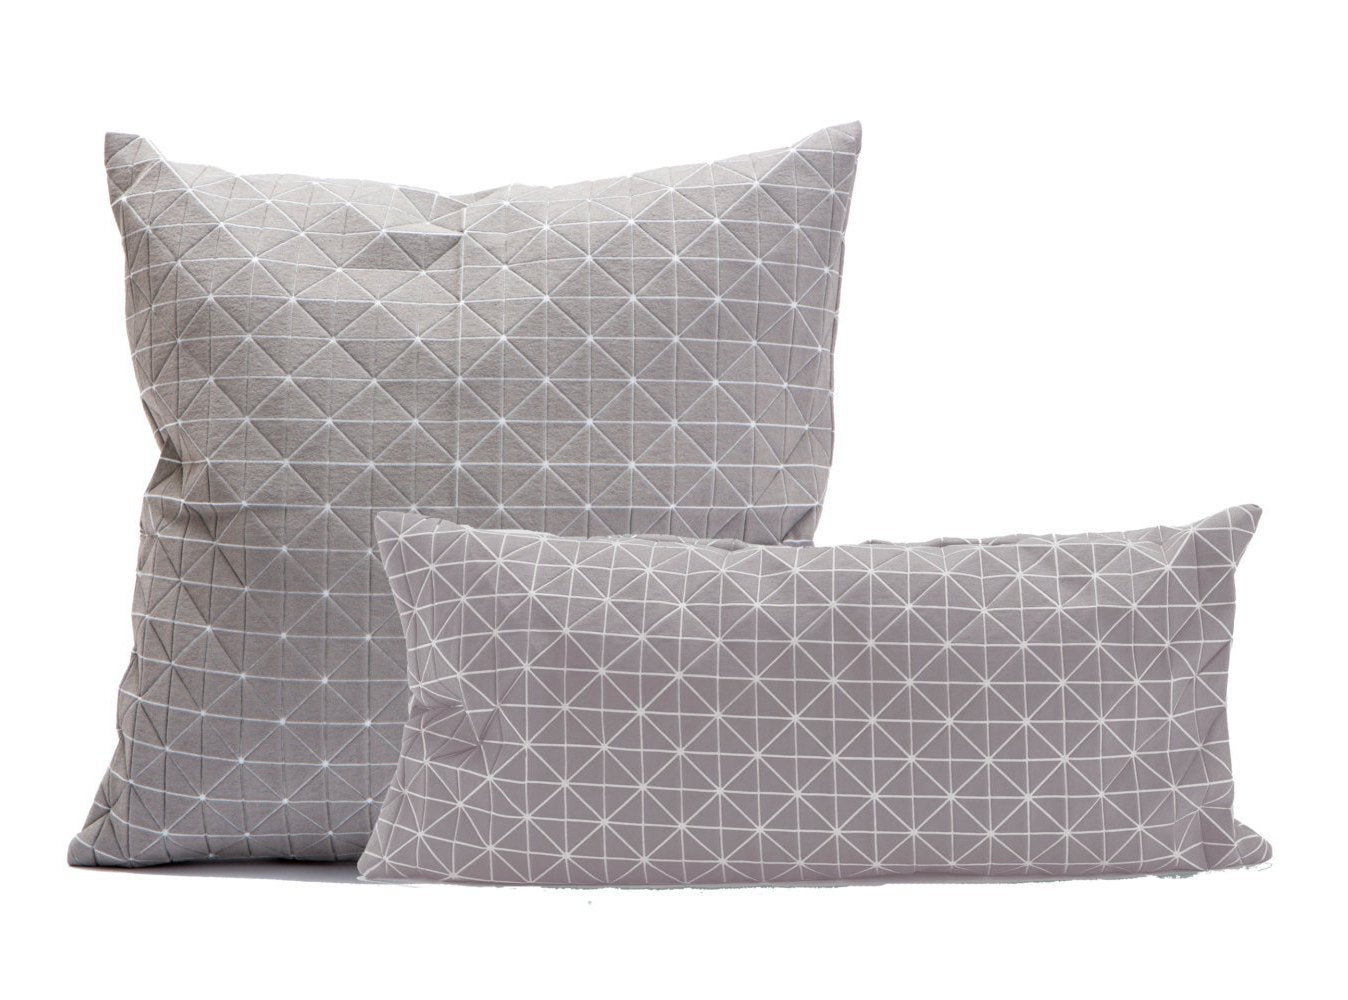 Two origami geometric pillow cases 50x50 cm/19.5X19.5 inch & 60x30 cm/23.5x11.8 inch, Pair of  folding cushion covers, Home accessory